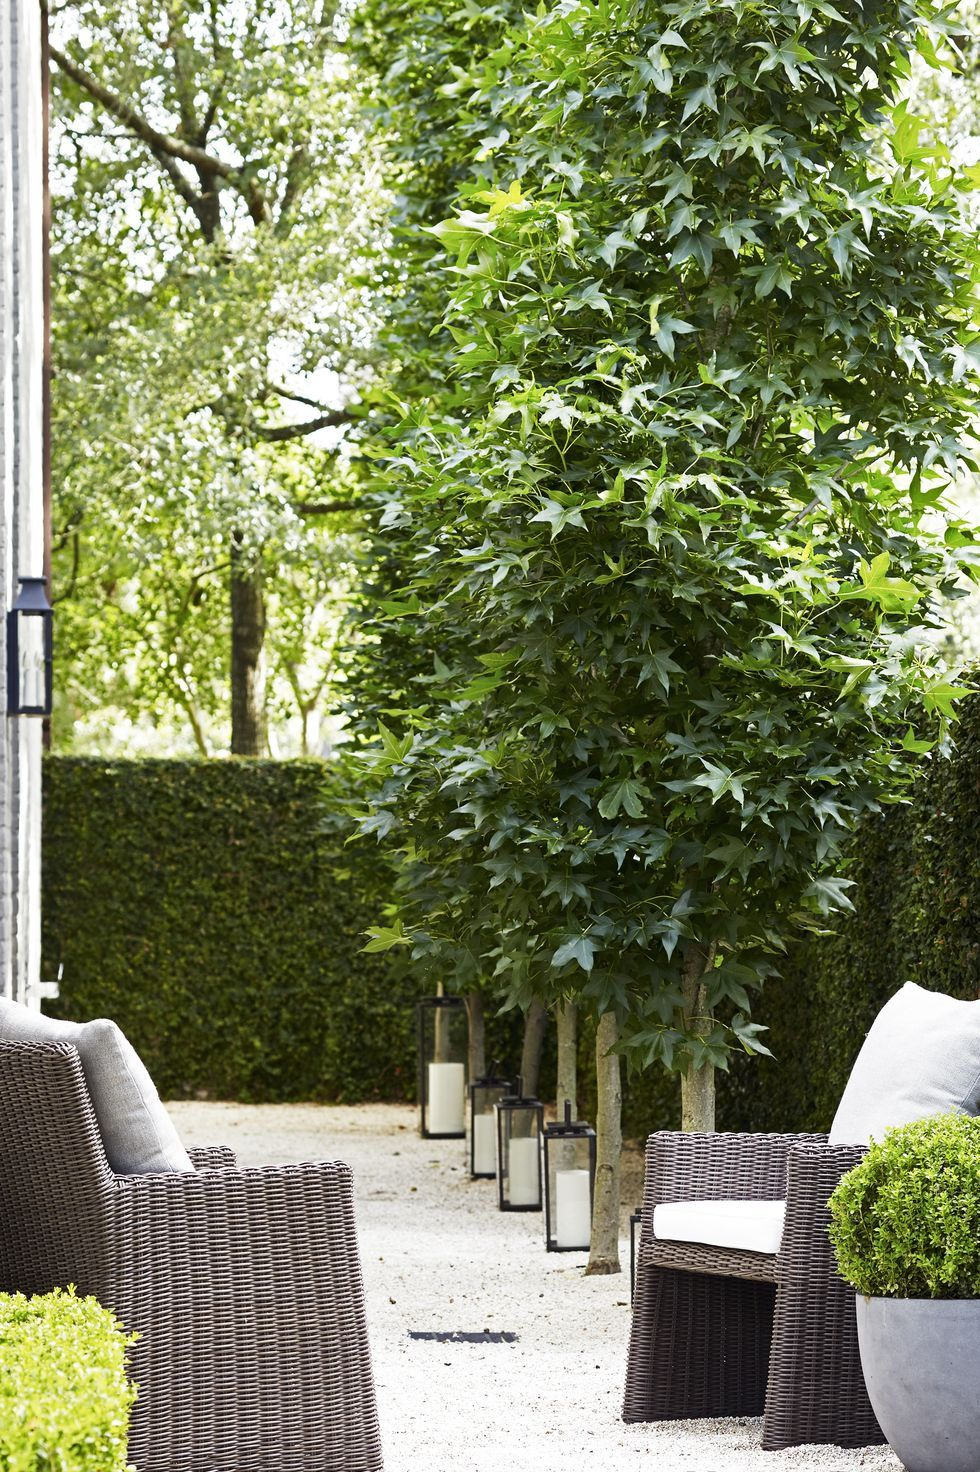 55 Landscaping Ideas to Steal for a Magical Outdoor Space